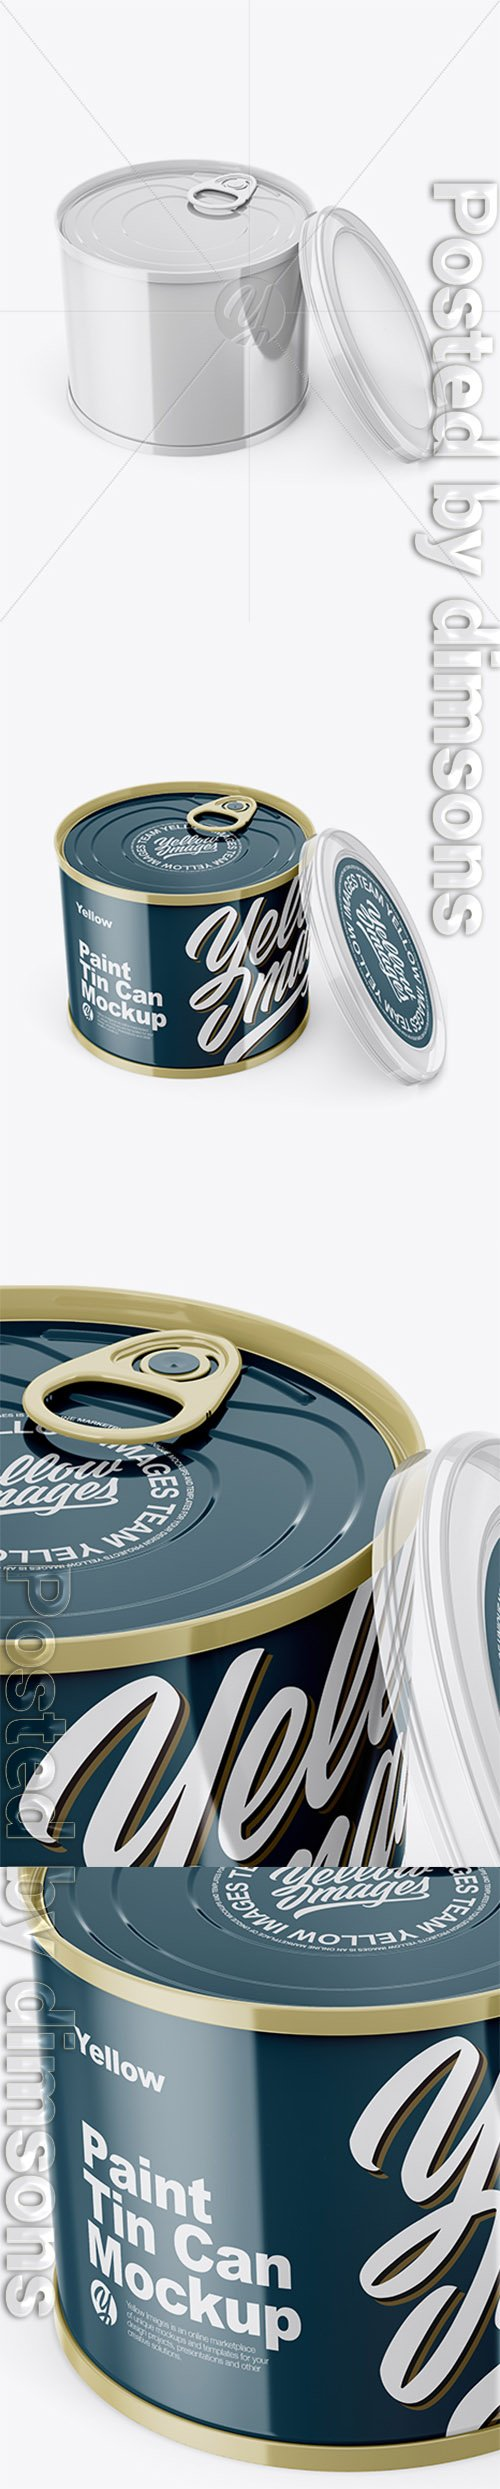 Glossy Tin Can with Transparent Cap Mockup - Front View (High Angle Shot) 31450 TIF